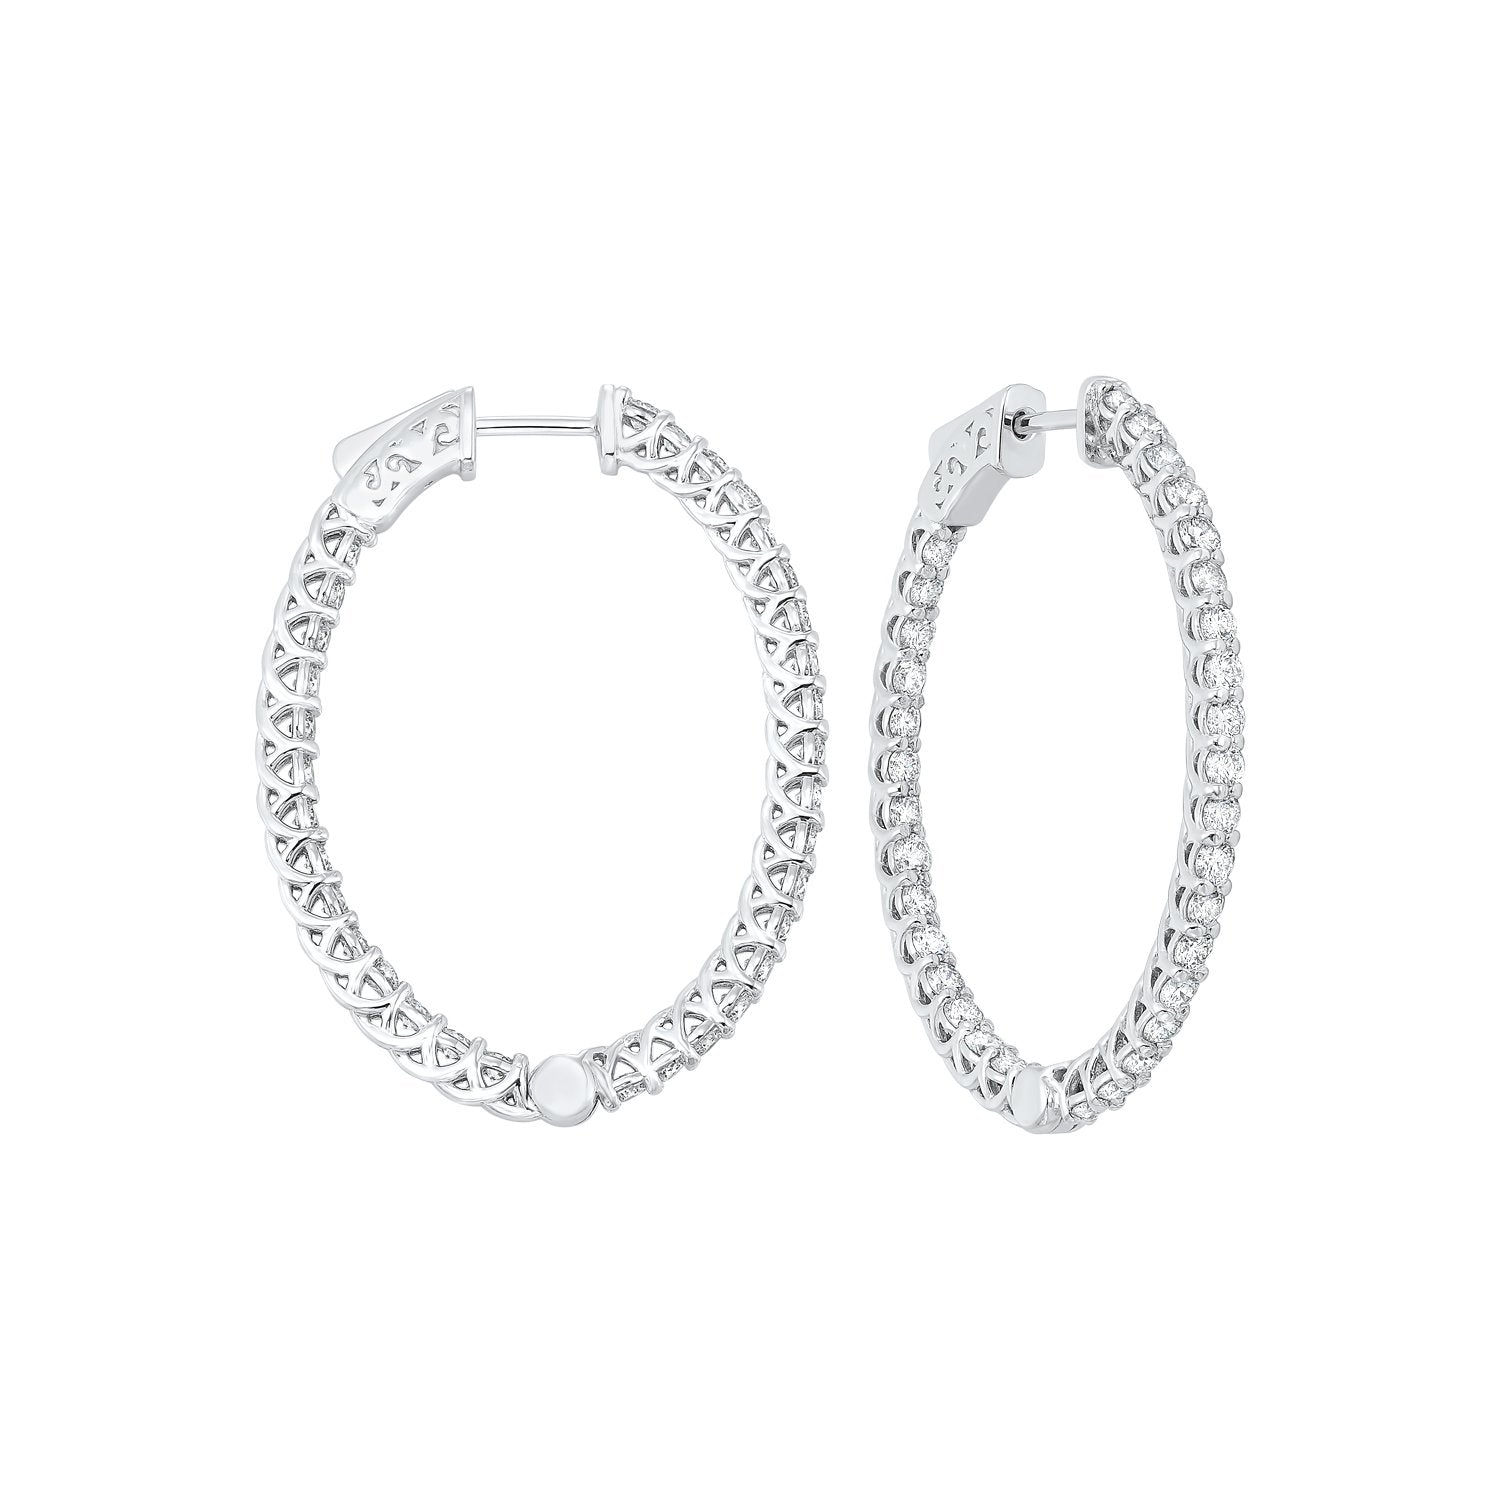 Delicate In-Out Diamond Hoop Earrings in 14K White Gold  (3 ct. tw.)